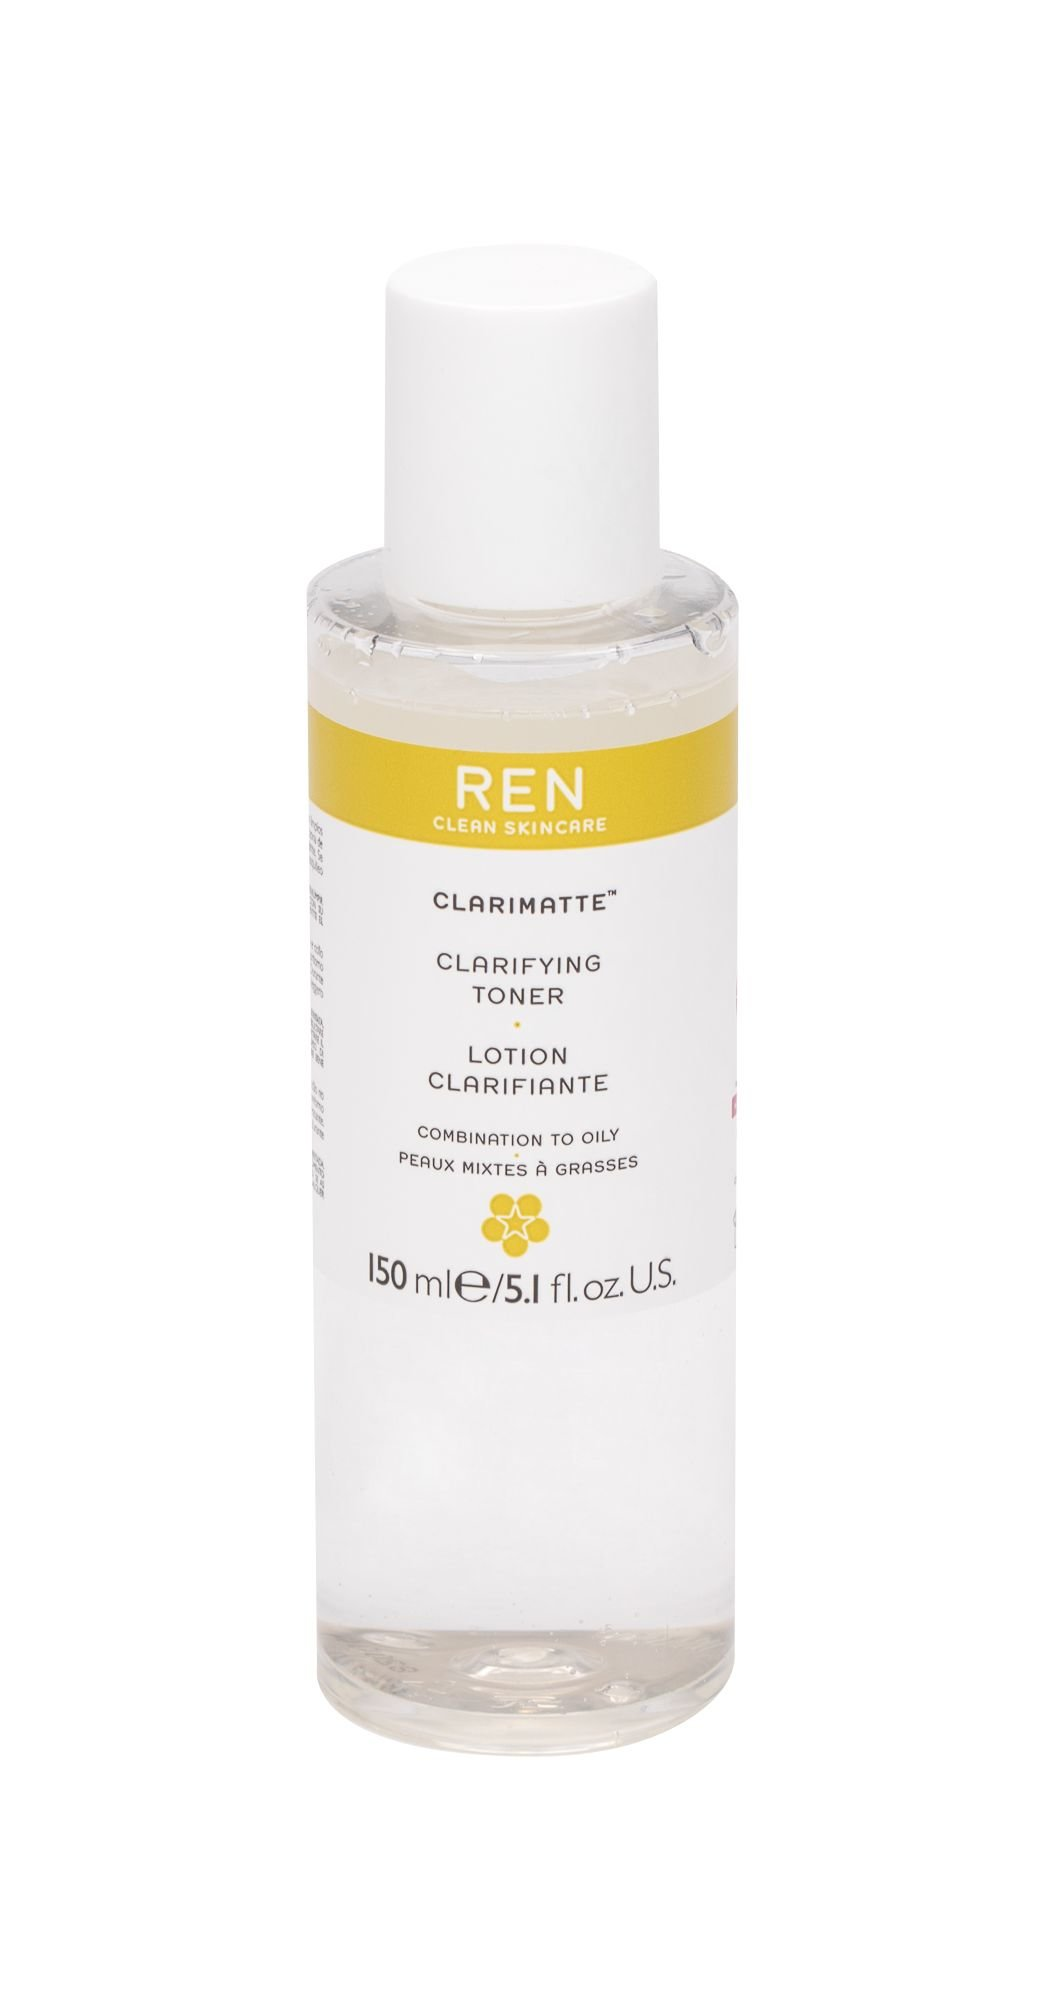 Ren Clean Skincare Clarimatte Cleansing Water 150ml